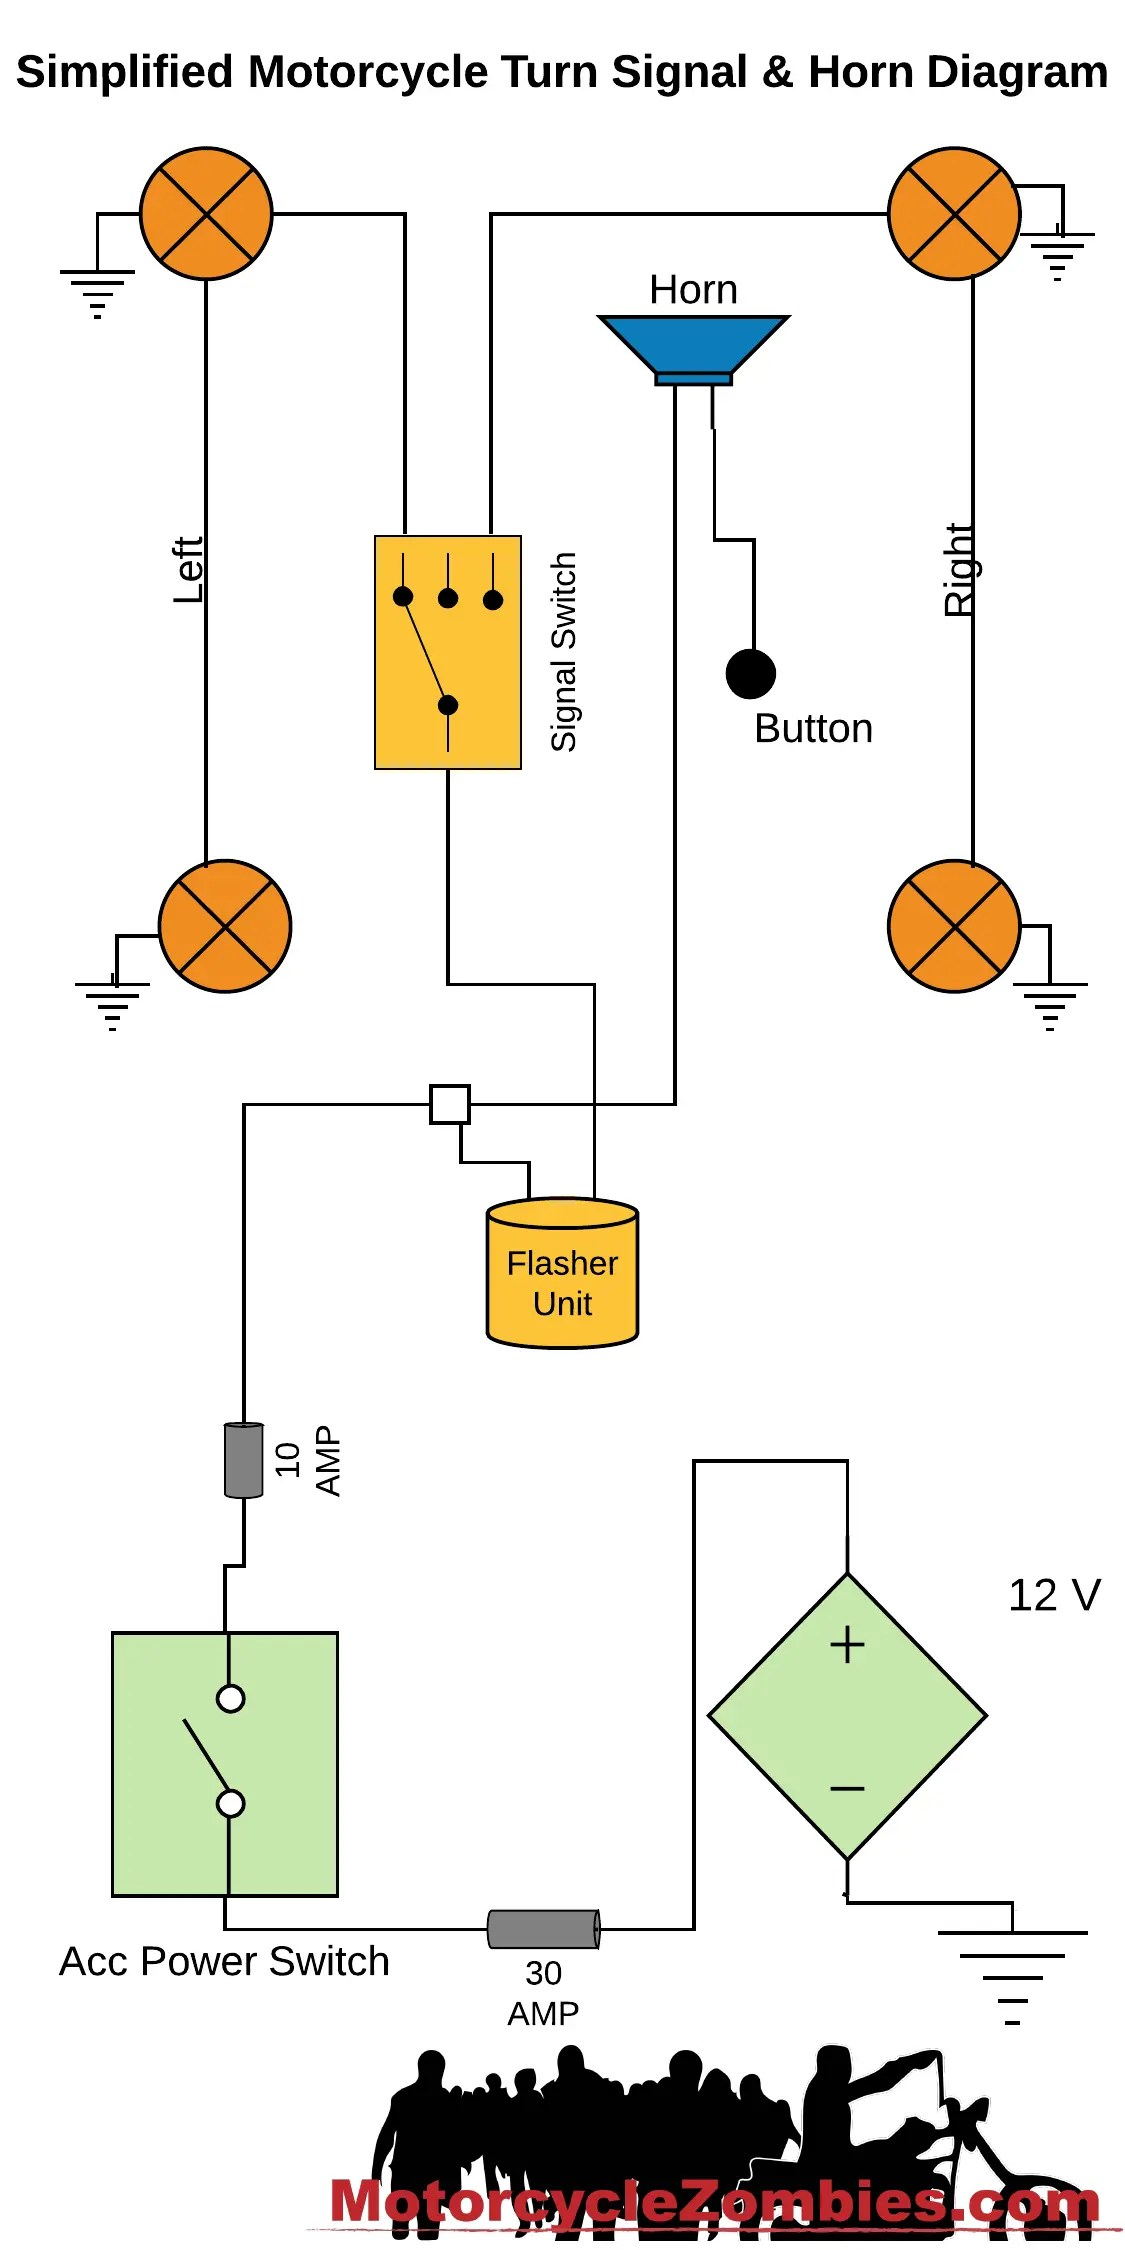 wiring diagram for motorcycle turn signals auto electrical wiringwiring diagram for motorcycle turn signals